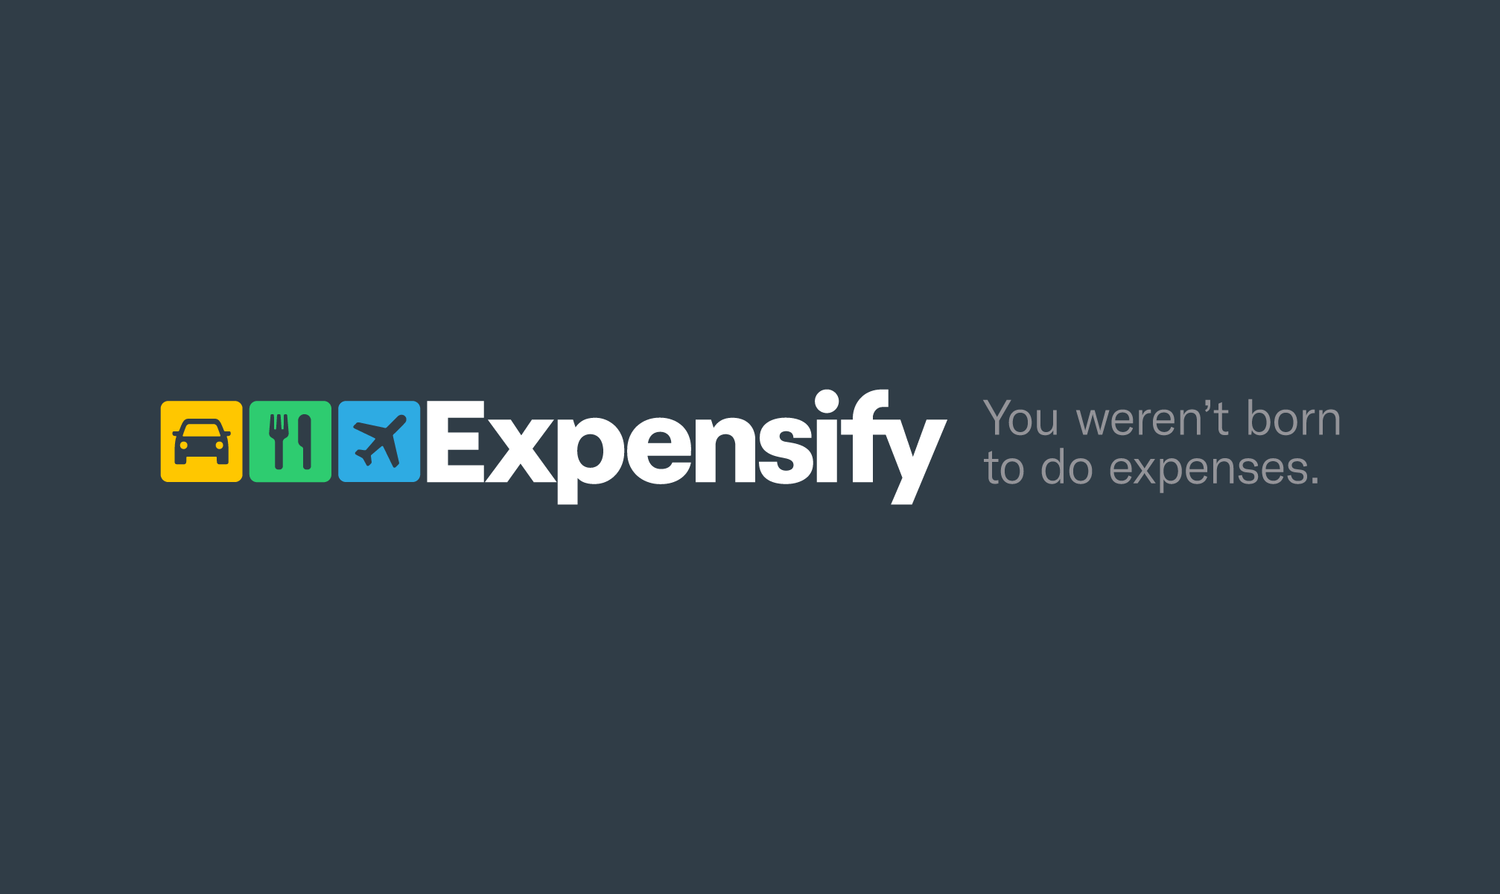 Expense Management Software - Expensify